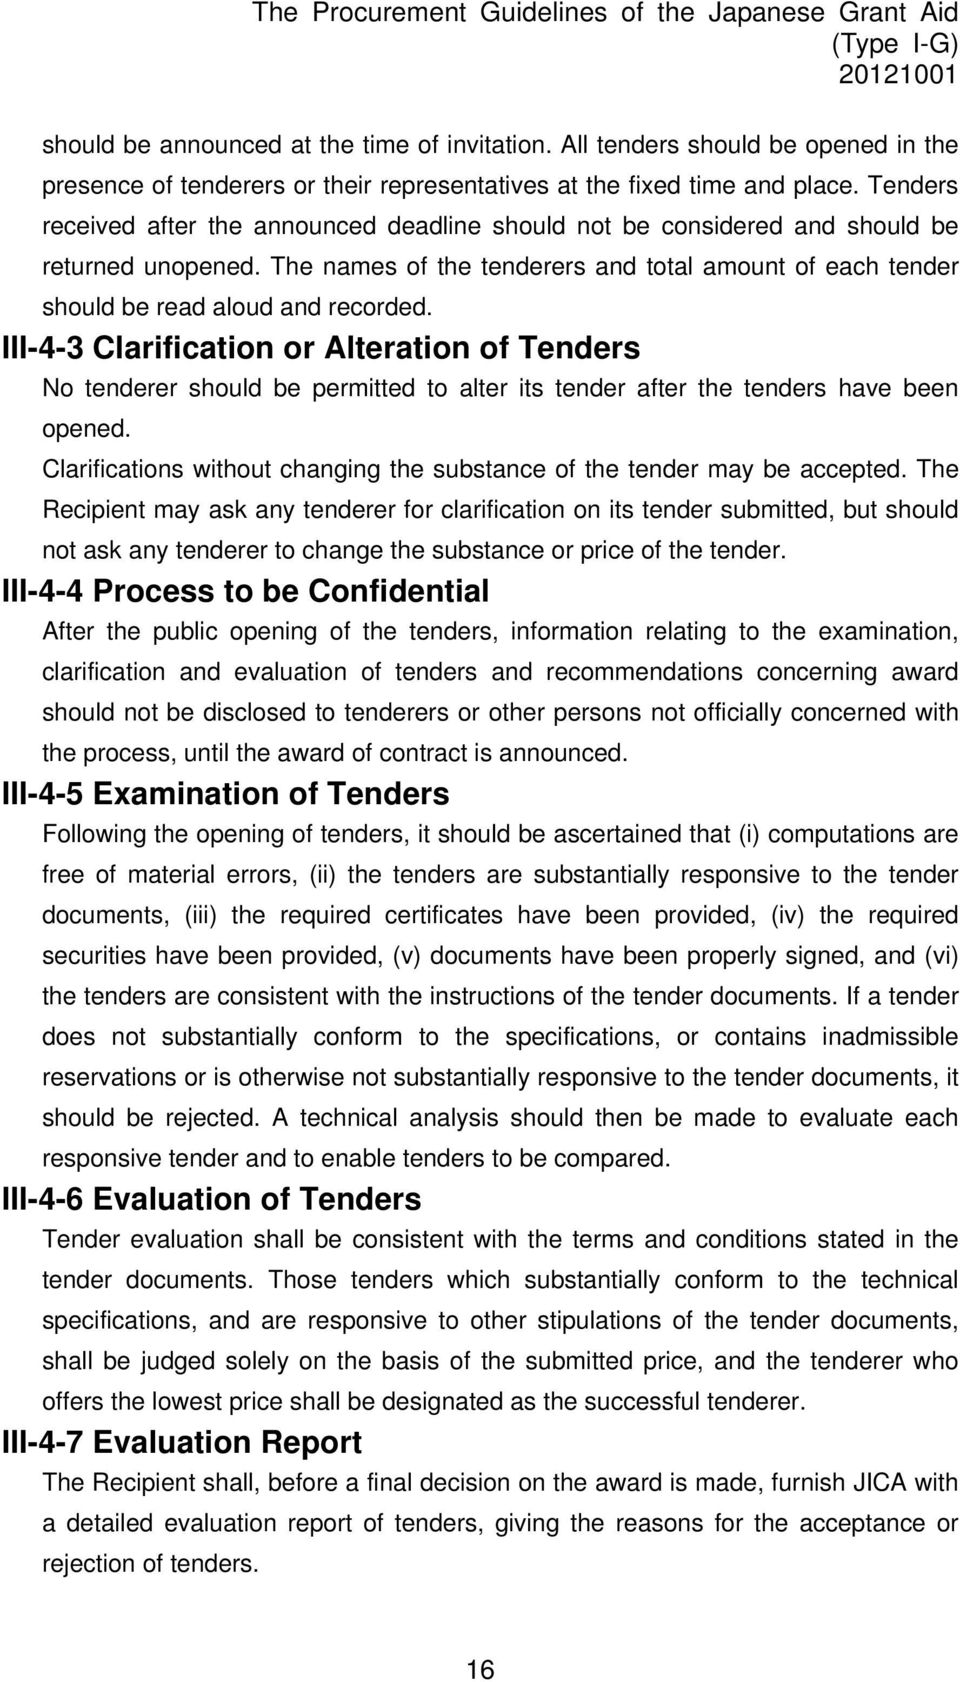 III-4-3 Clarification or Alteration of Tenders No tenderer should be permitted to alter its tender after the tenders have been opened.